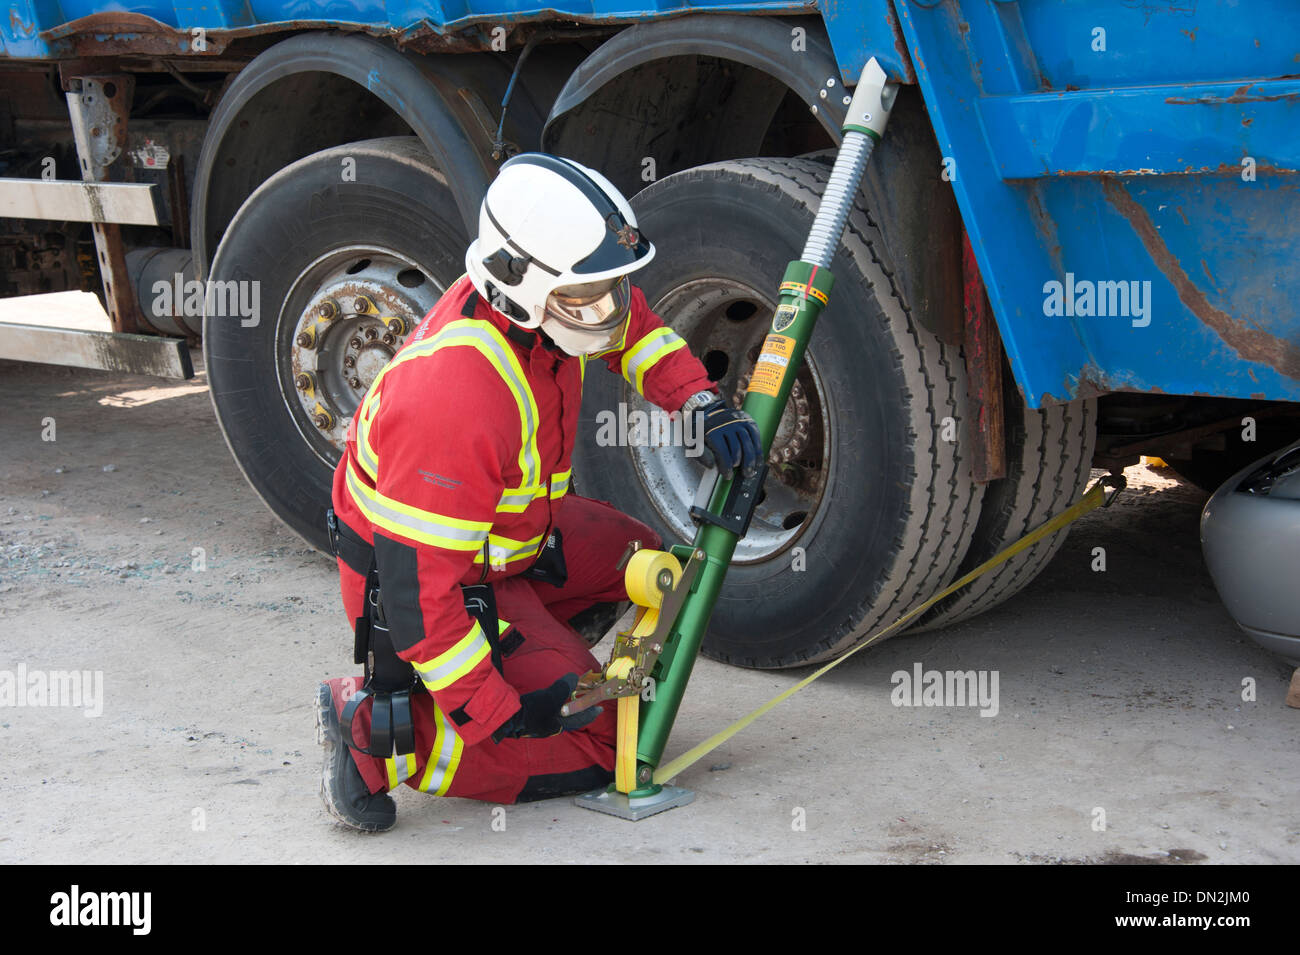 Firefighter stabilisting HGV Lorry in crash SIMULATION Stock Photo ...